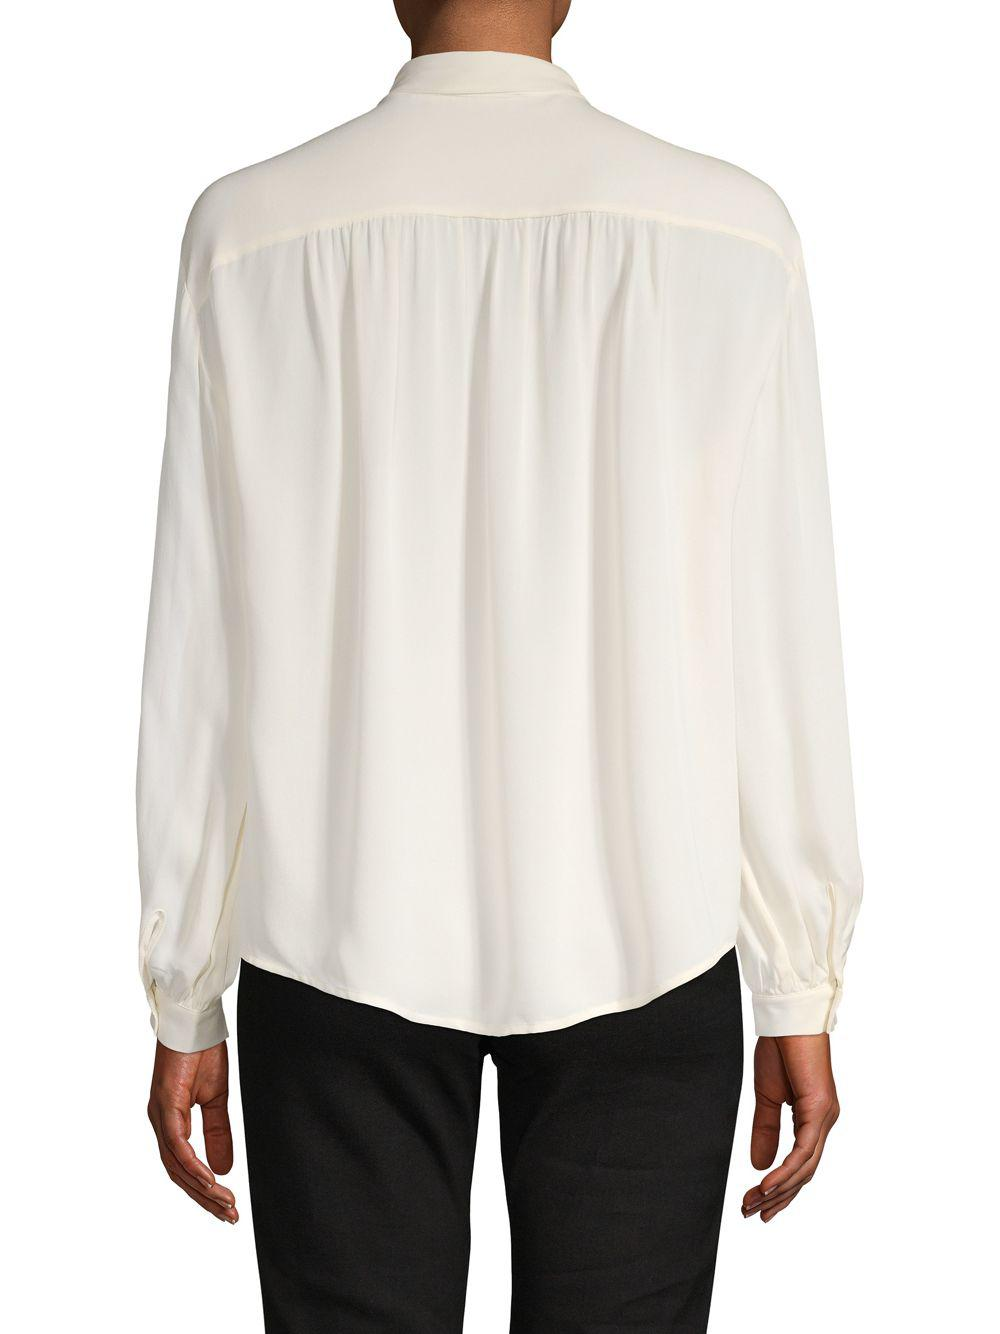 8593269a1004a Lyst - Joie Bow-accented Long-sleeve Silk Top in White